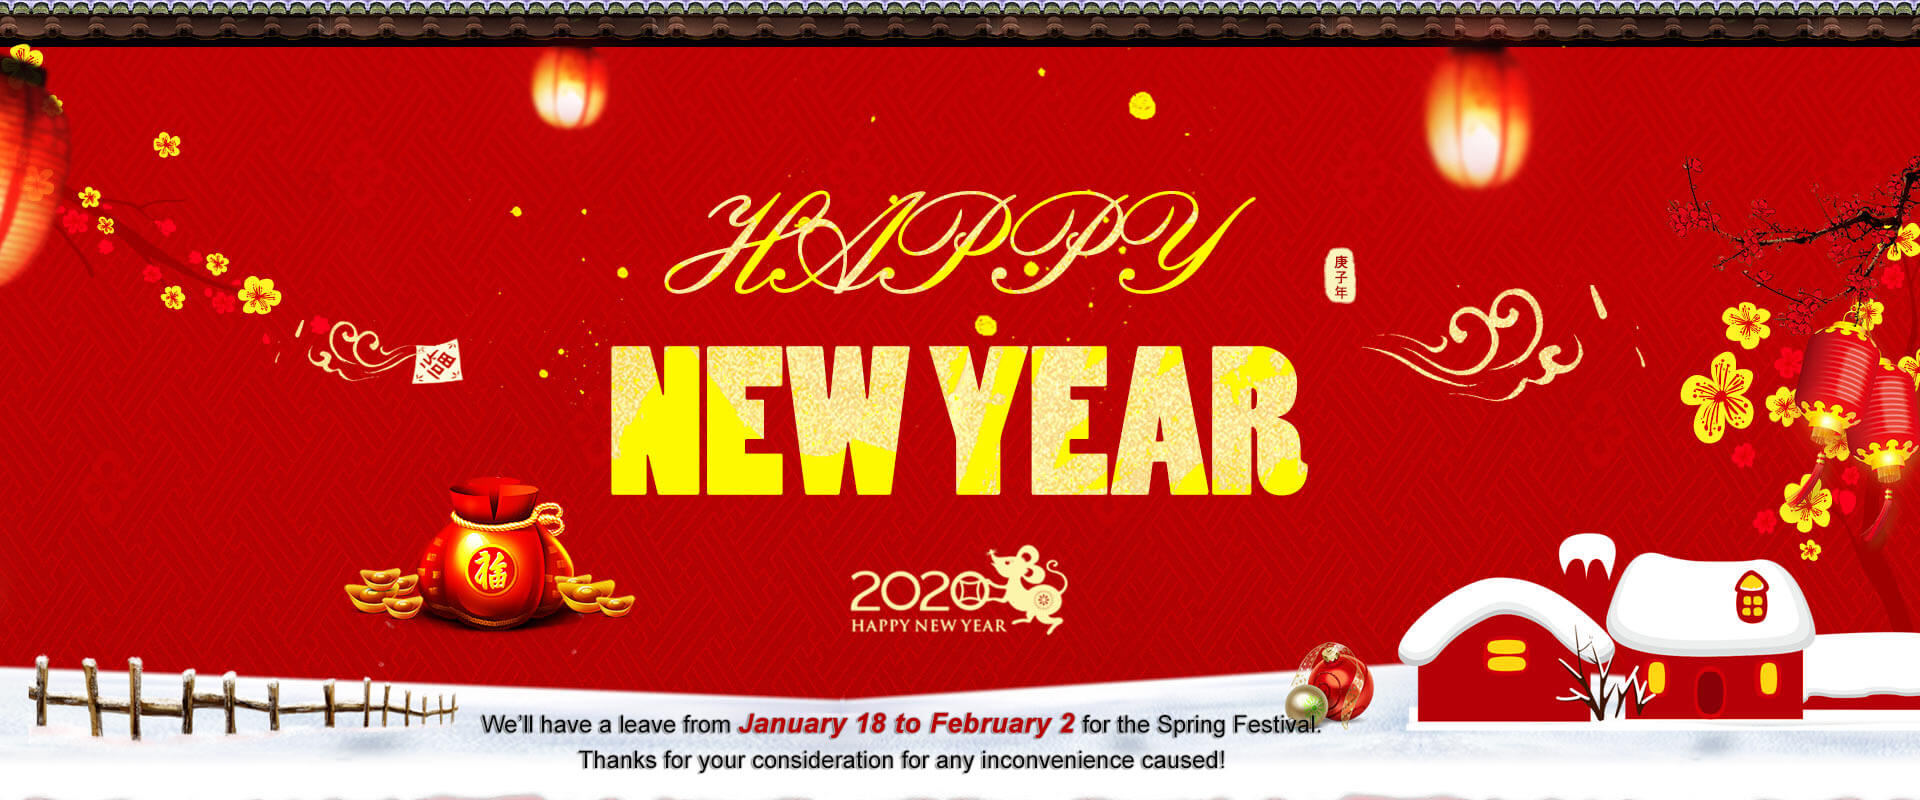 PS Electronics wishes you a happy new year!